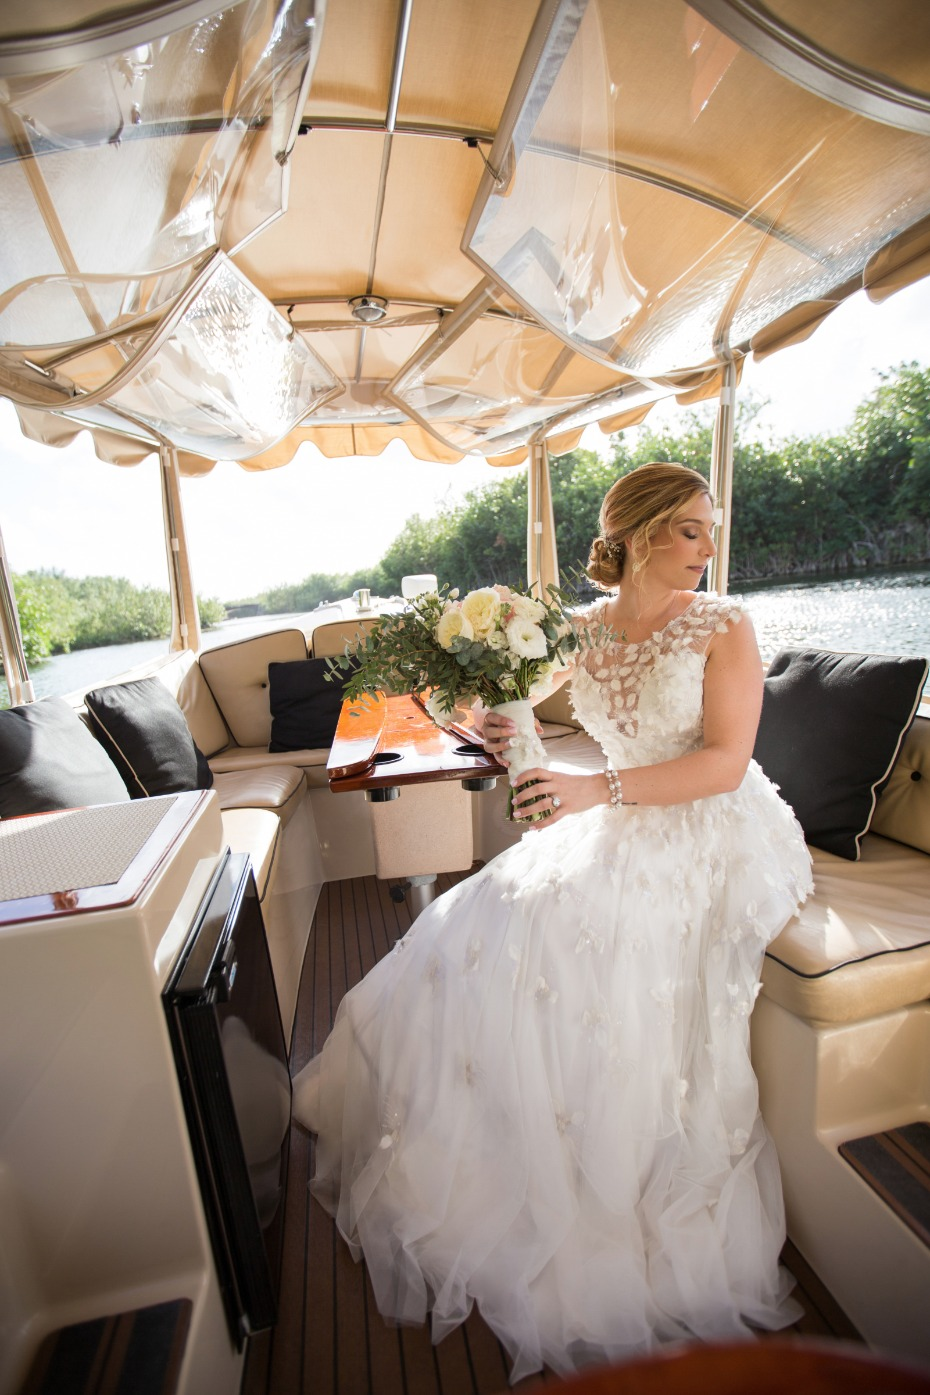 Boat ride for the bride